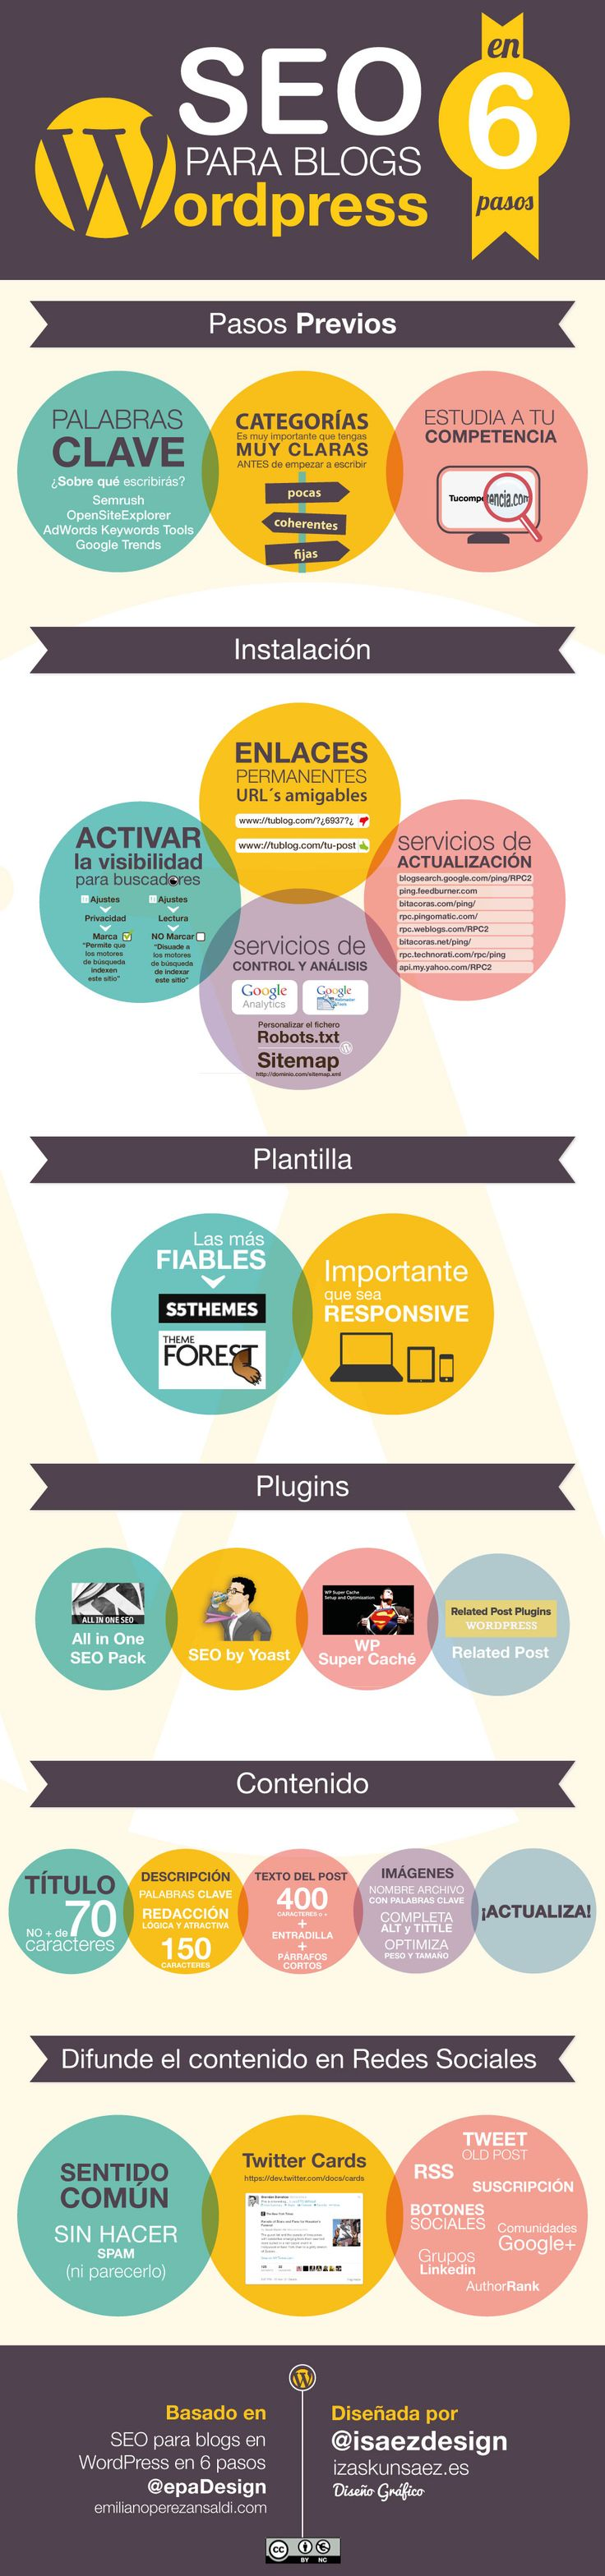 SEO para blogs de Wordpress en 6 pasos #infografia